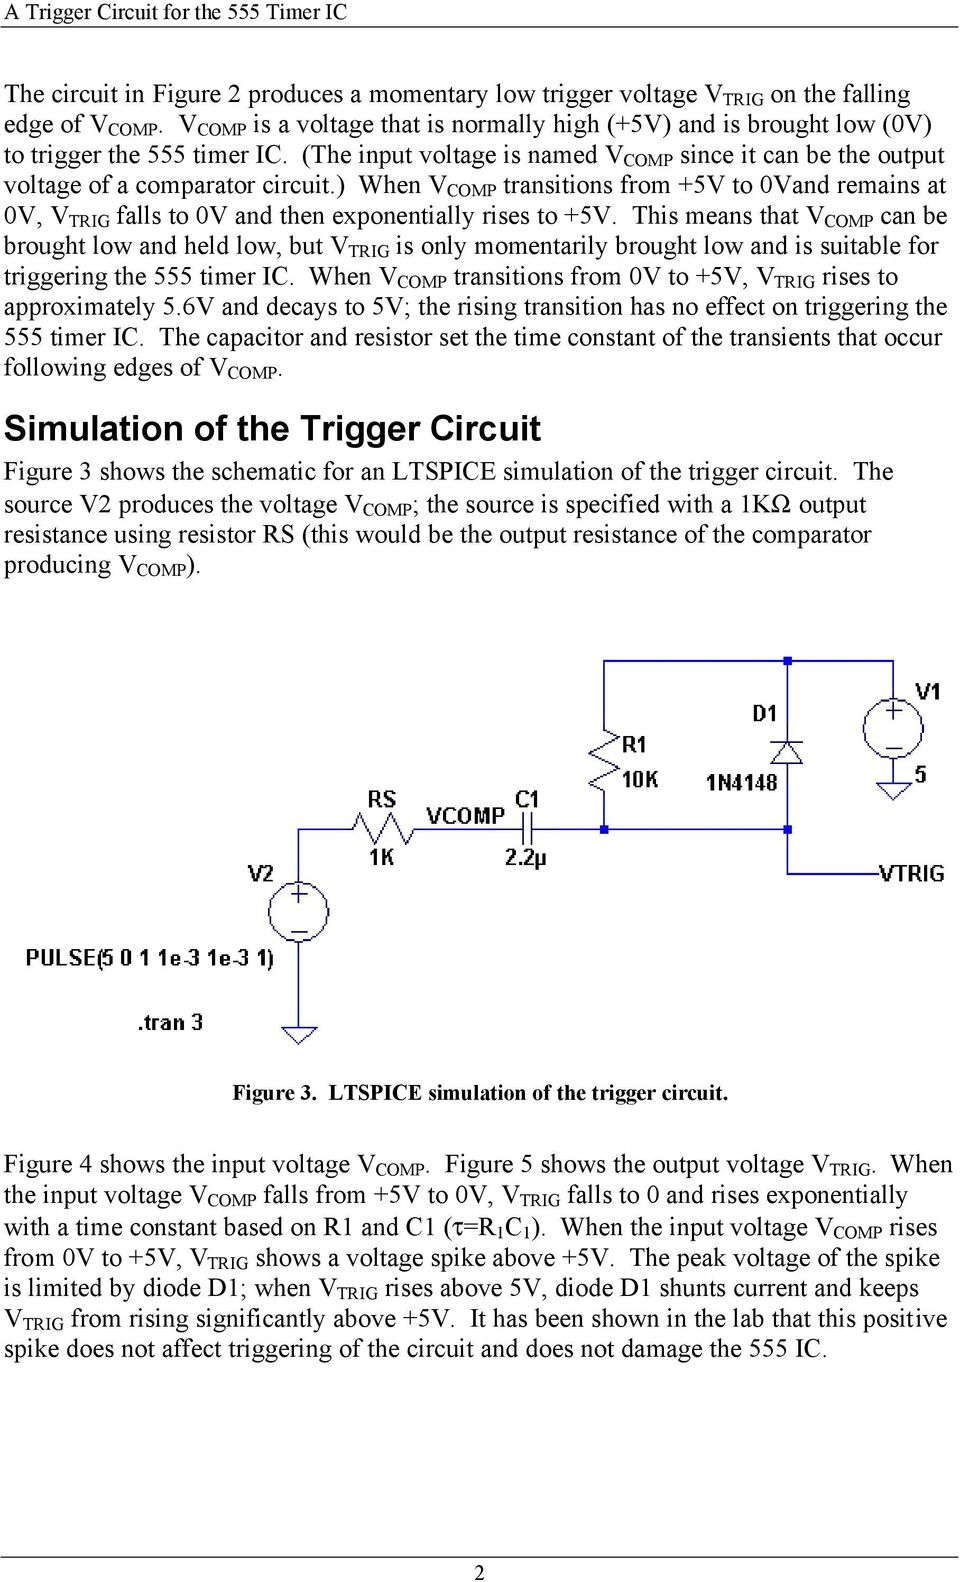 Lm555 Micro Controller Circuit Variable Pulse Width Oscillator Output Graph Part 31